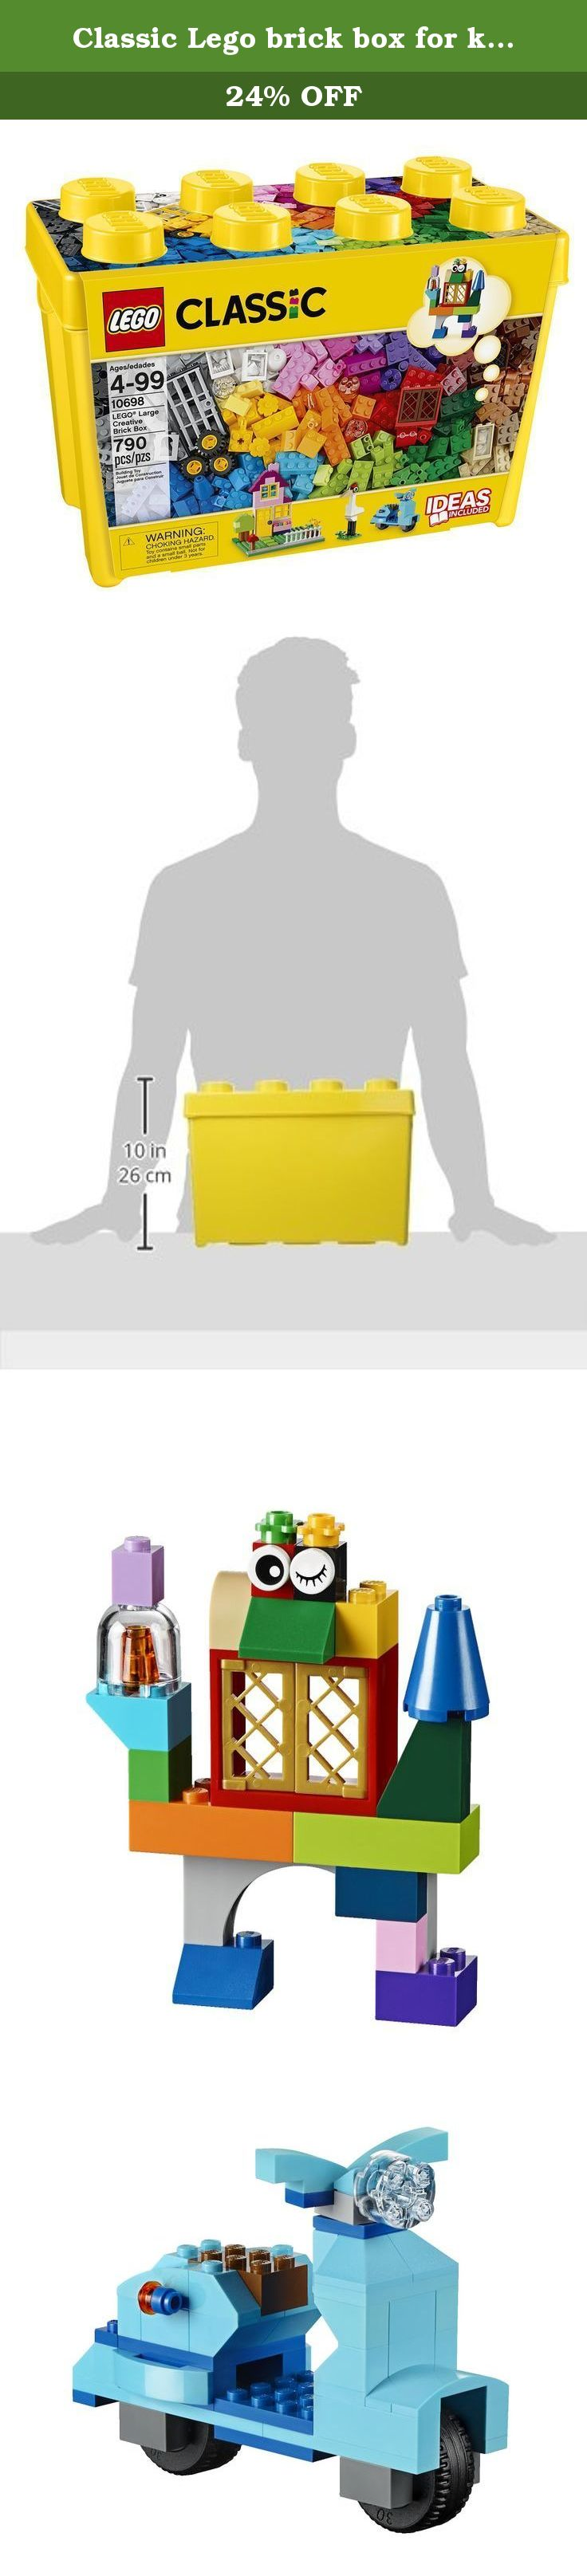 Classic Lego brick box for kids of all ages even the ones inside